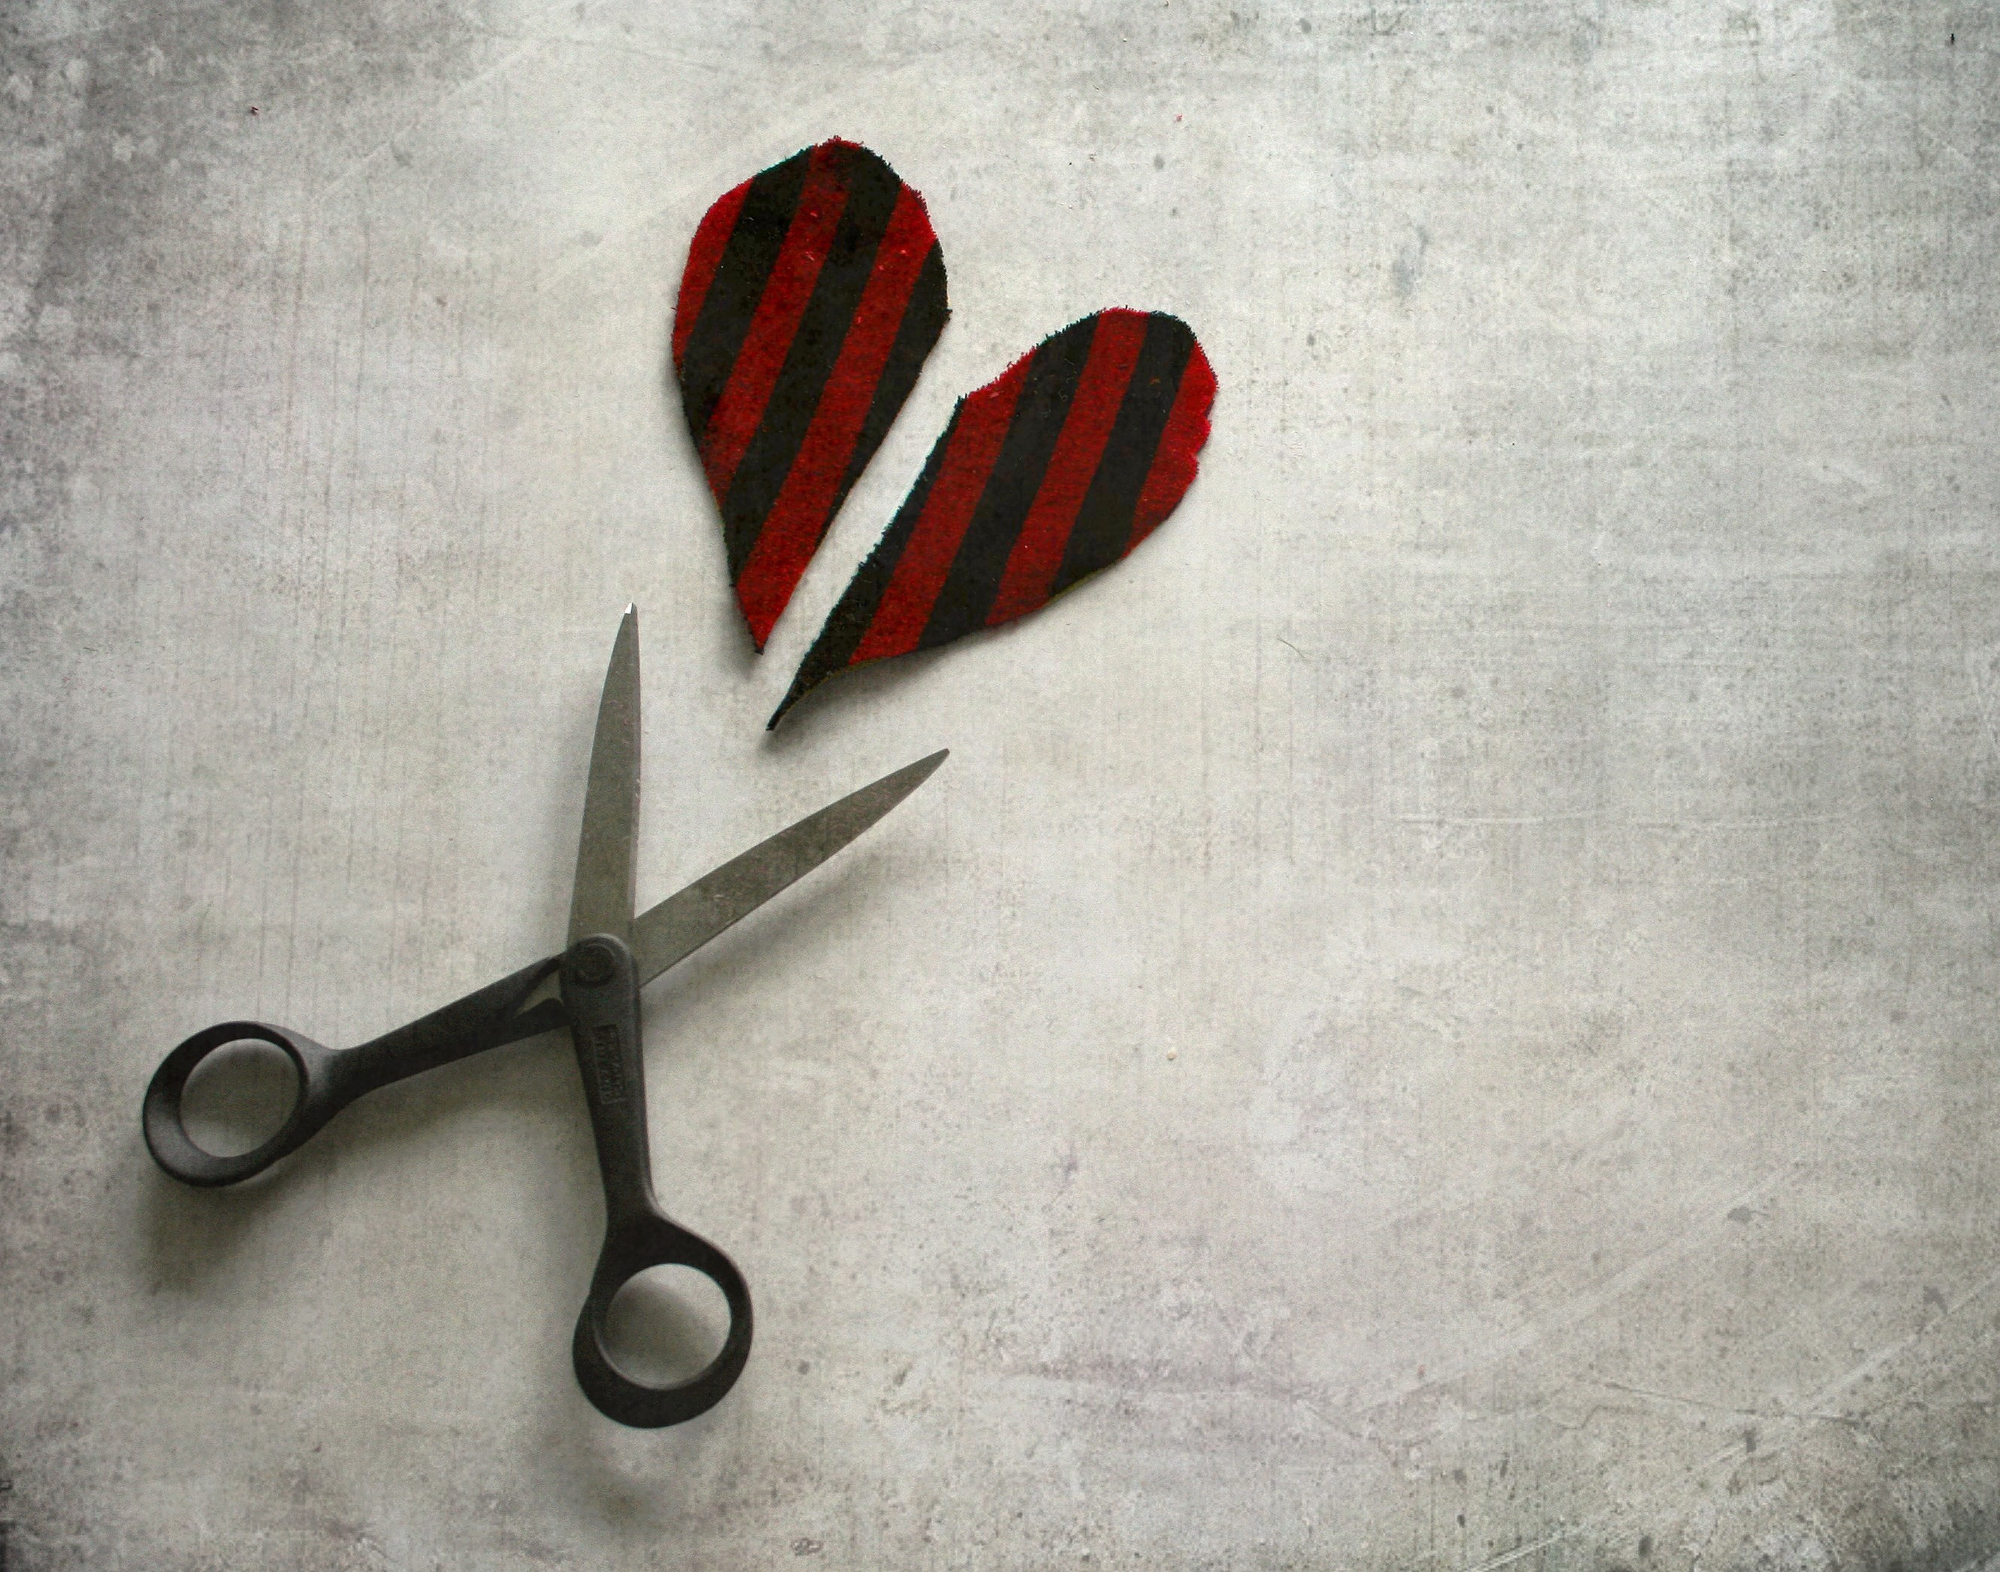 Felt heart and scissors